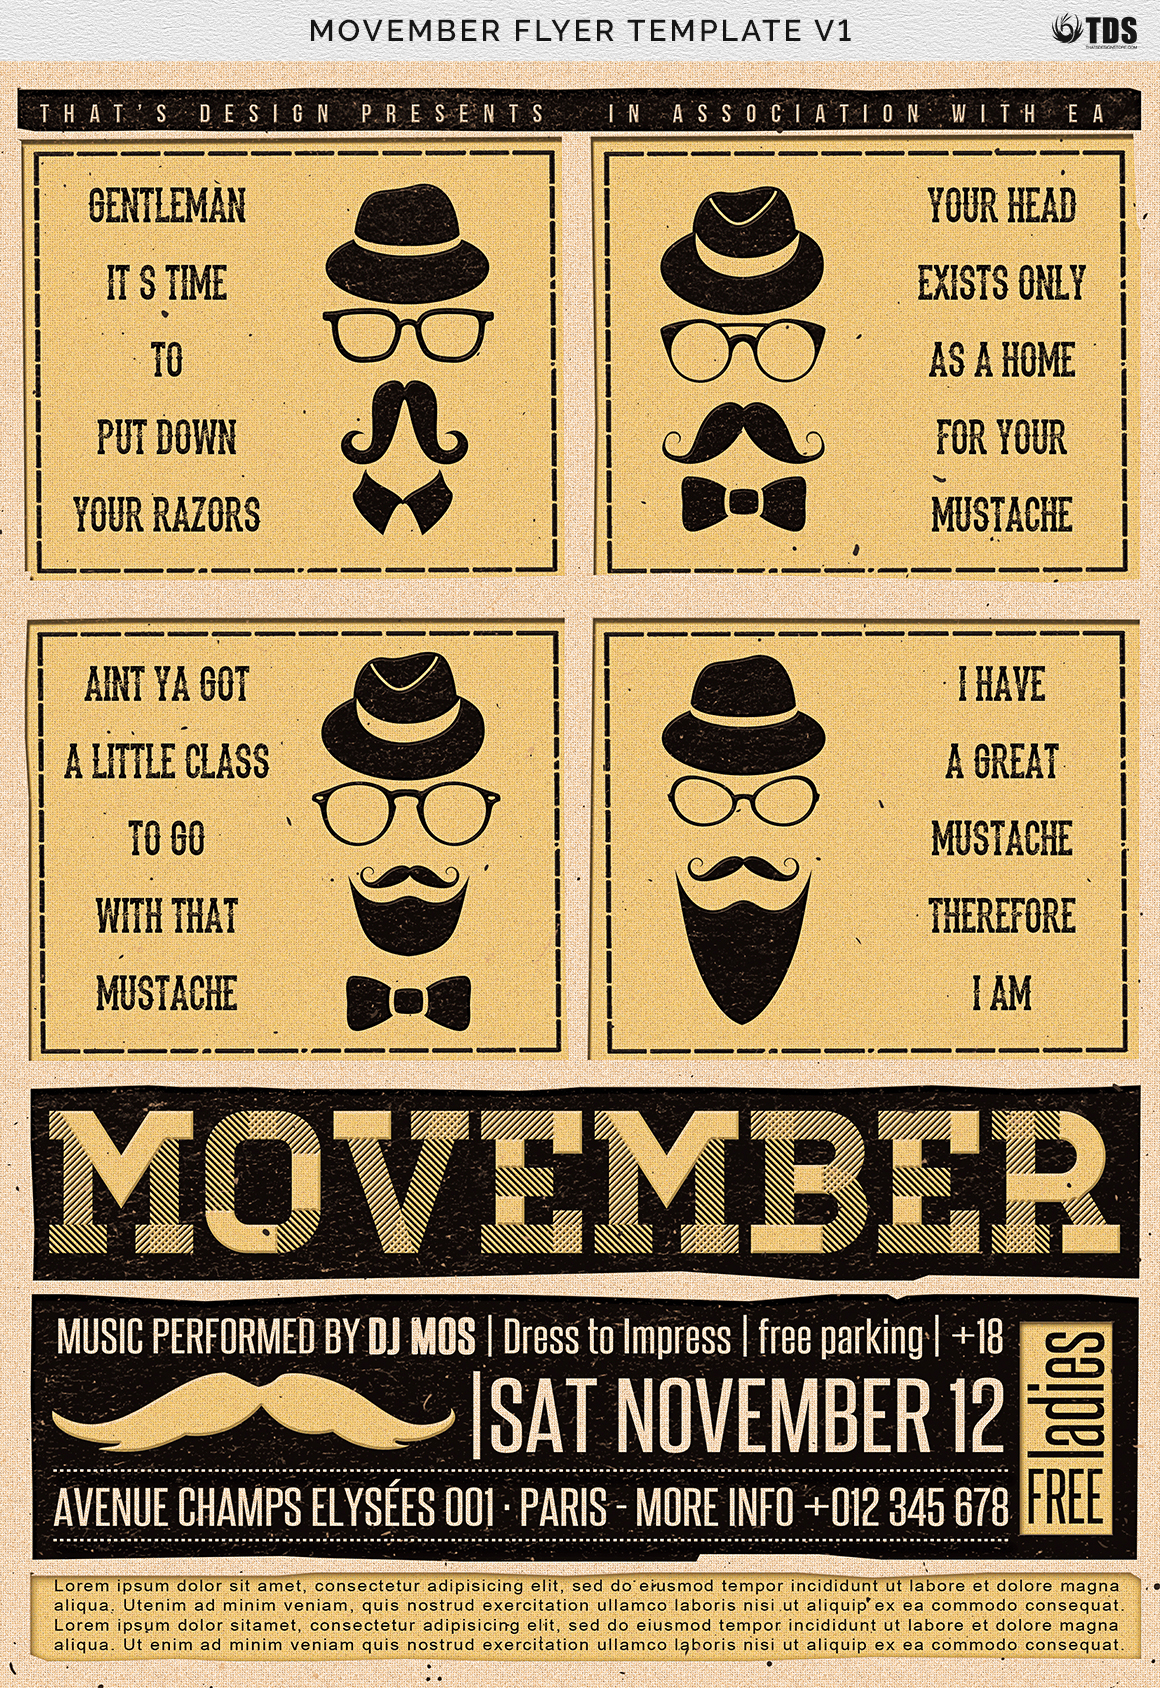 Movember Flyer Template V1 example image 4